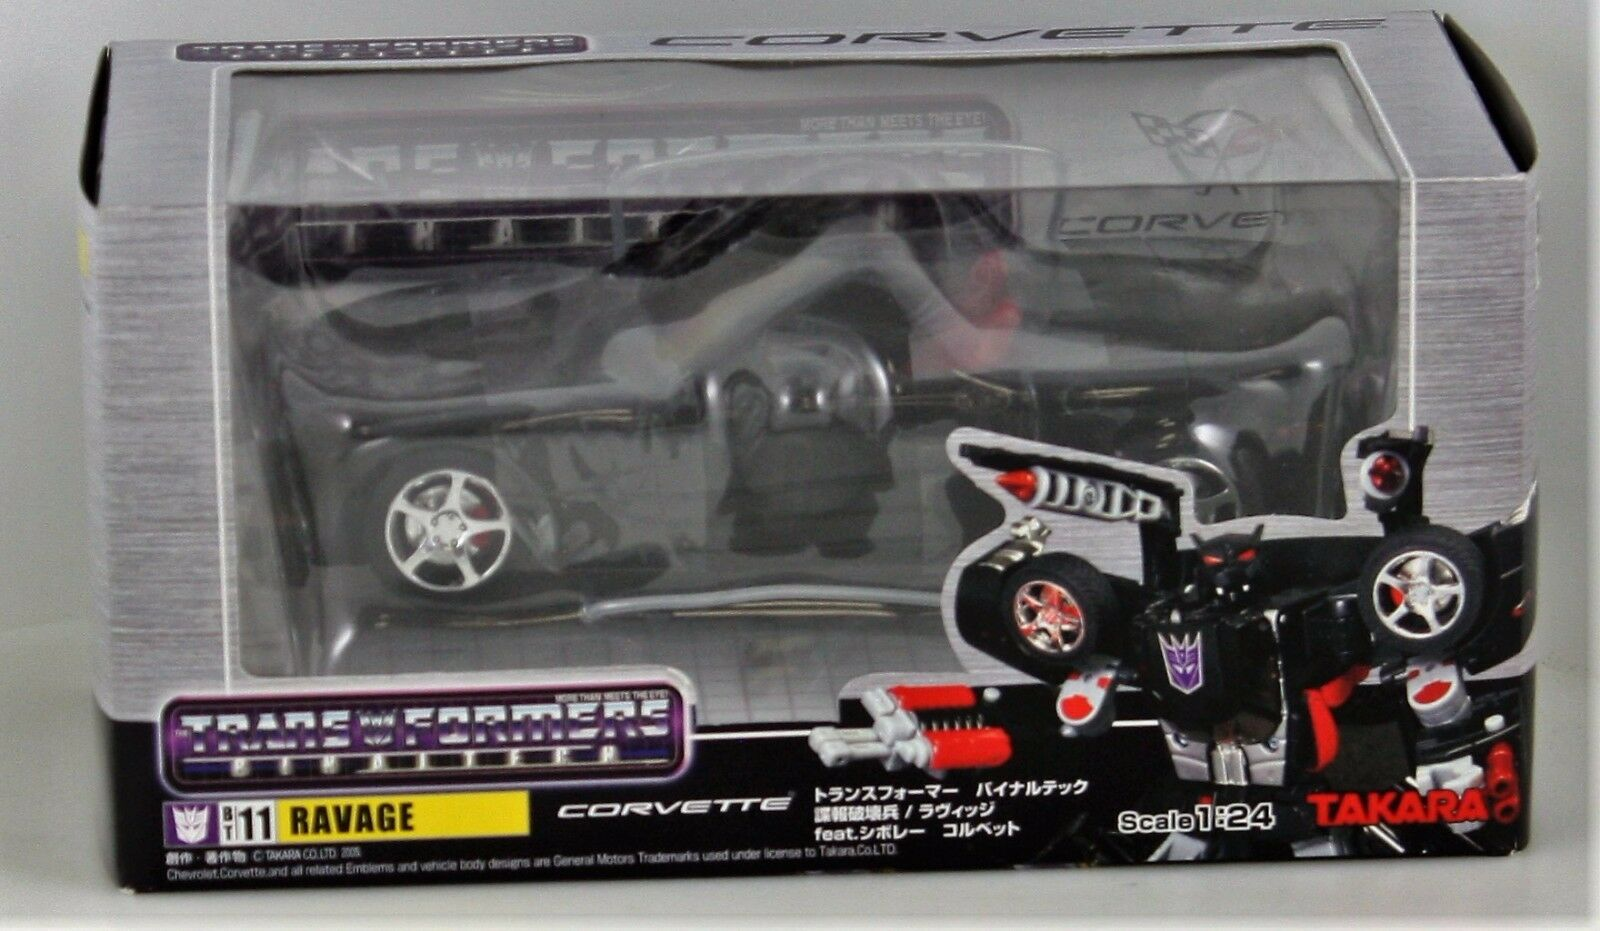 Transformers arrasan Binaltech BT11 Corvette Die Cast Juguete Takara 2005 Sellado 1 24